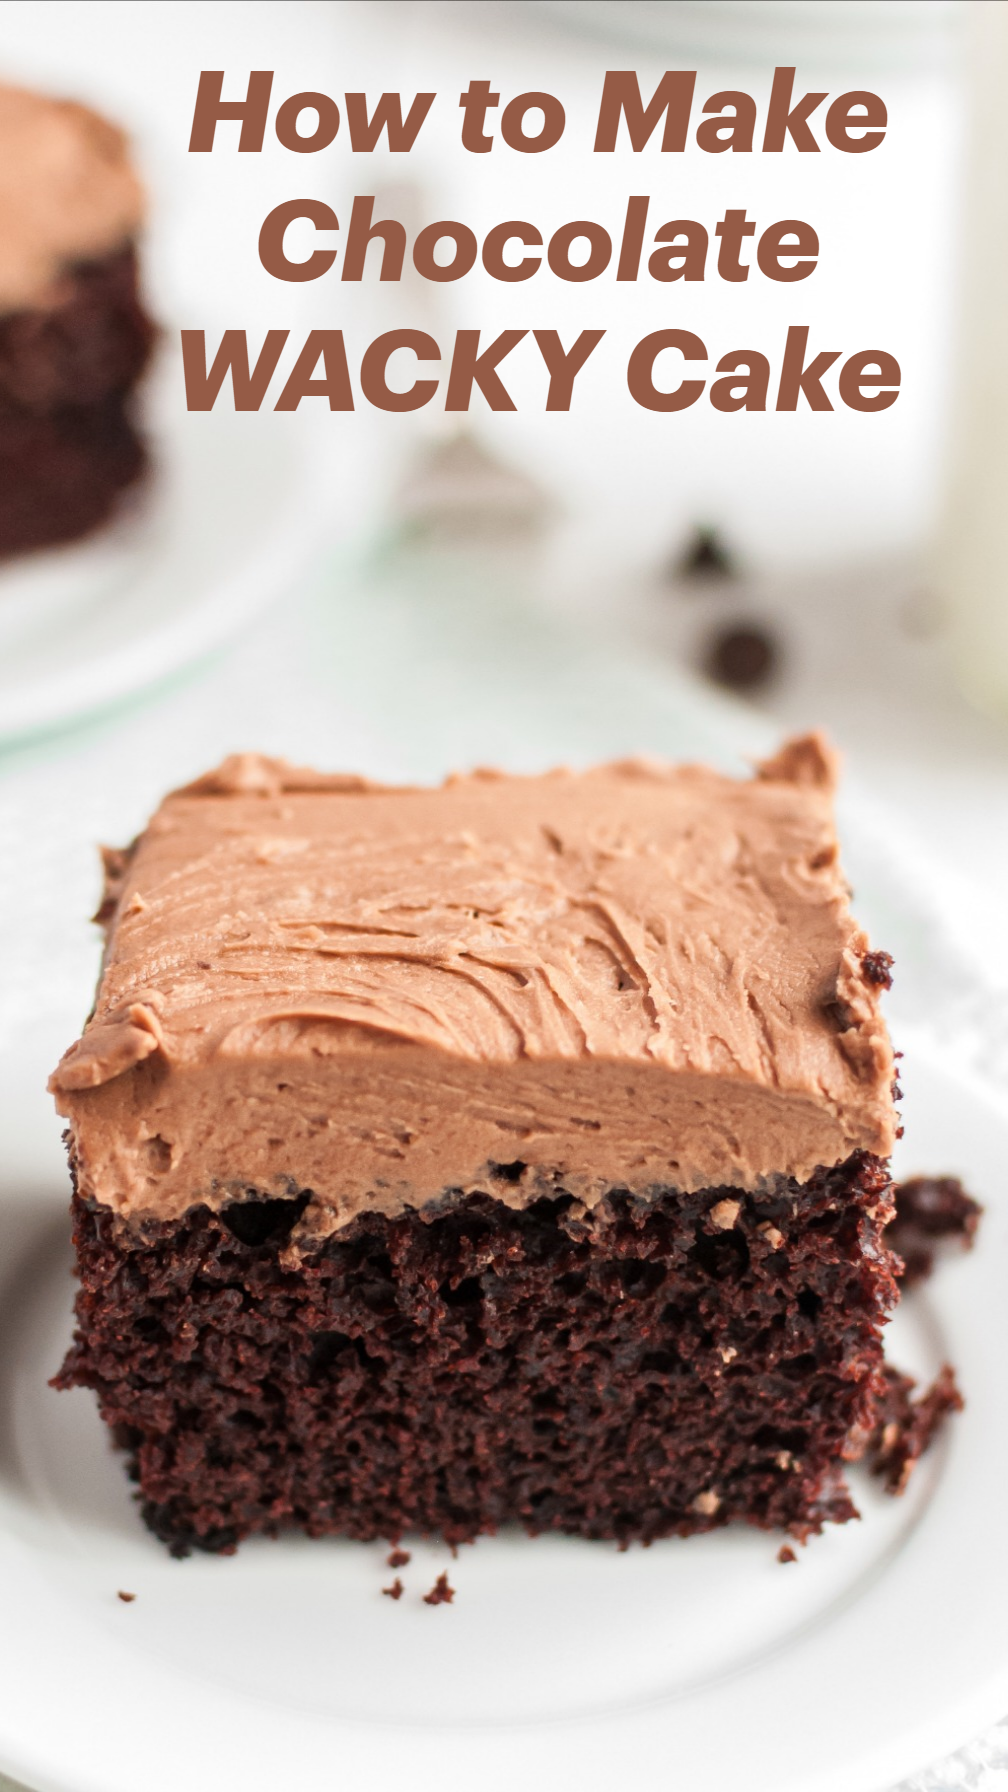 Photo of How to Make Chocolate WACKY Cake